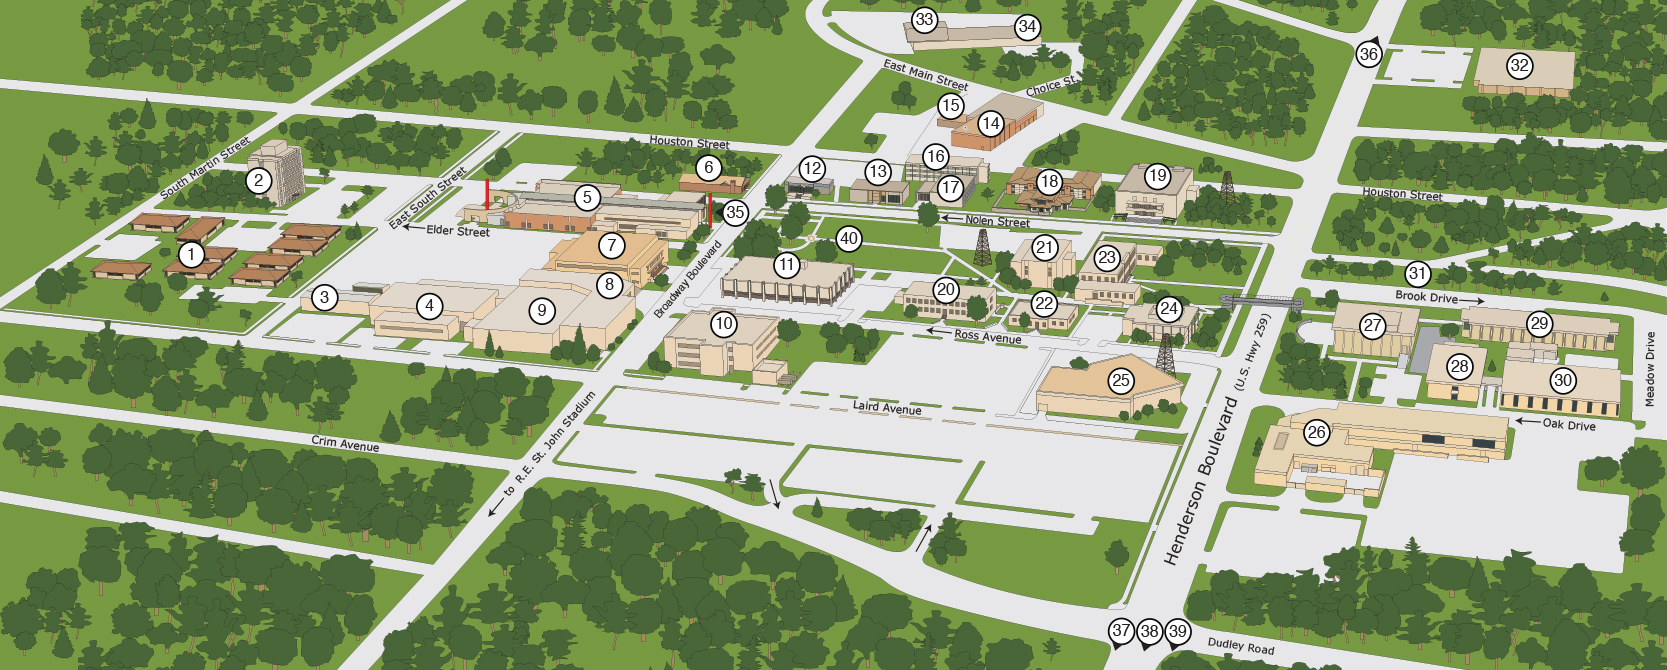 Kilogre Collage campus map